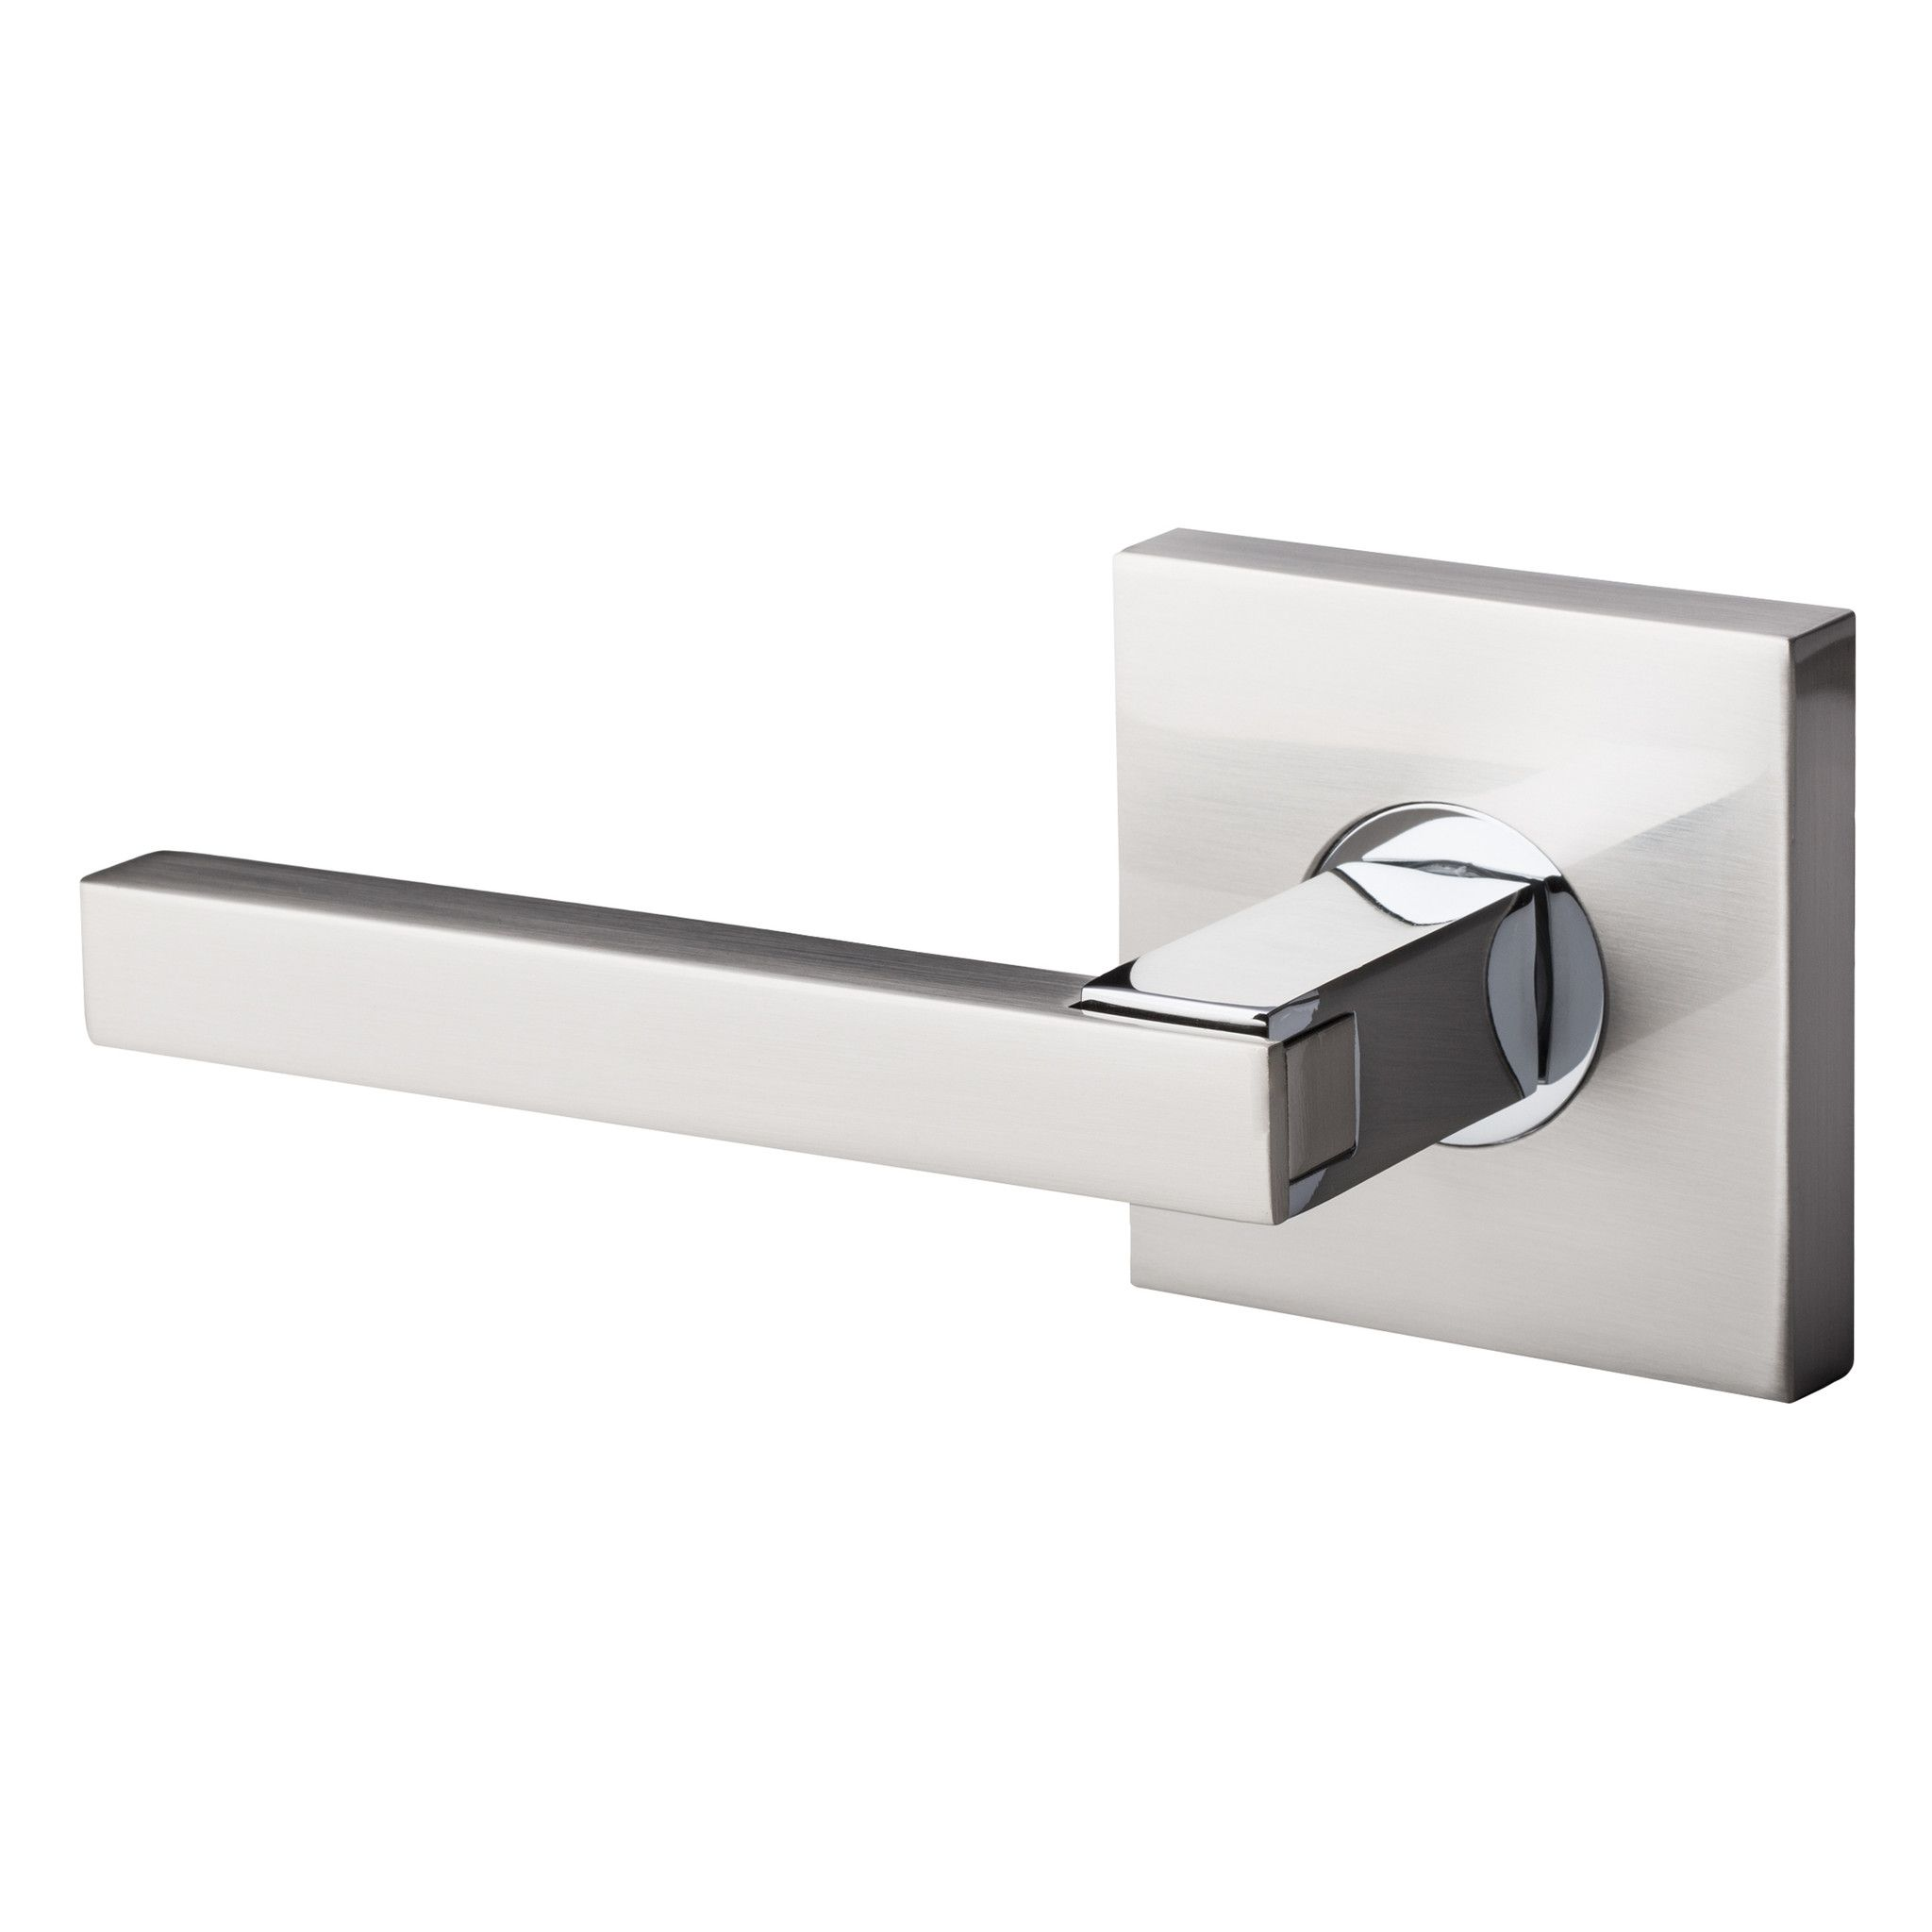 modern handballtunisie org china handles doors interior handle door stainless steel l splendorous